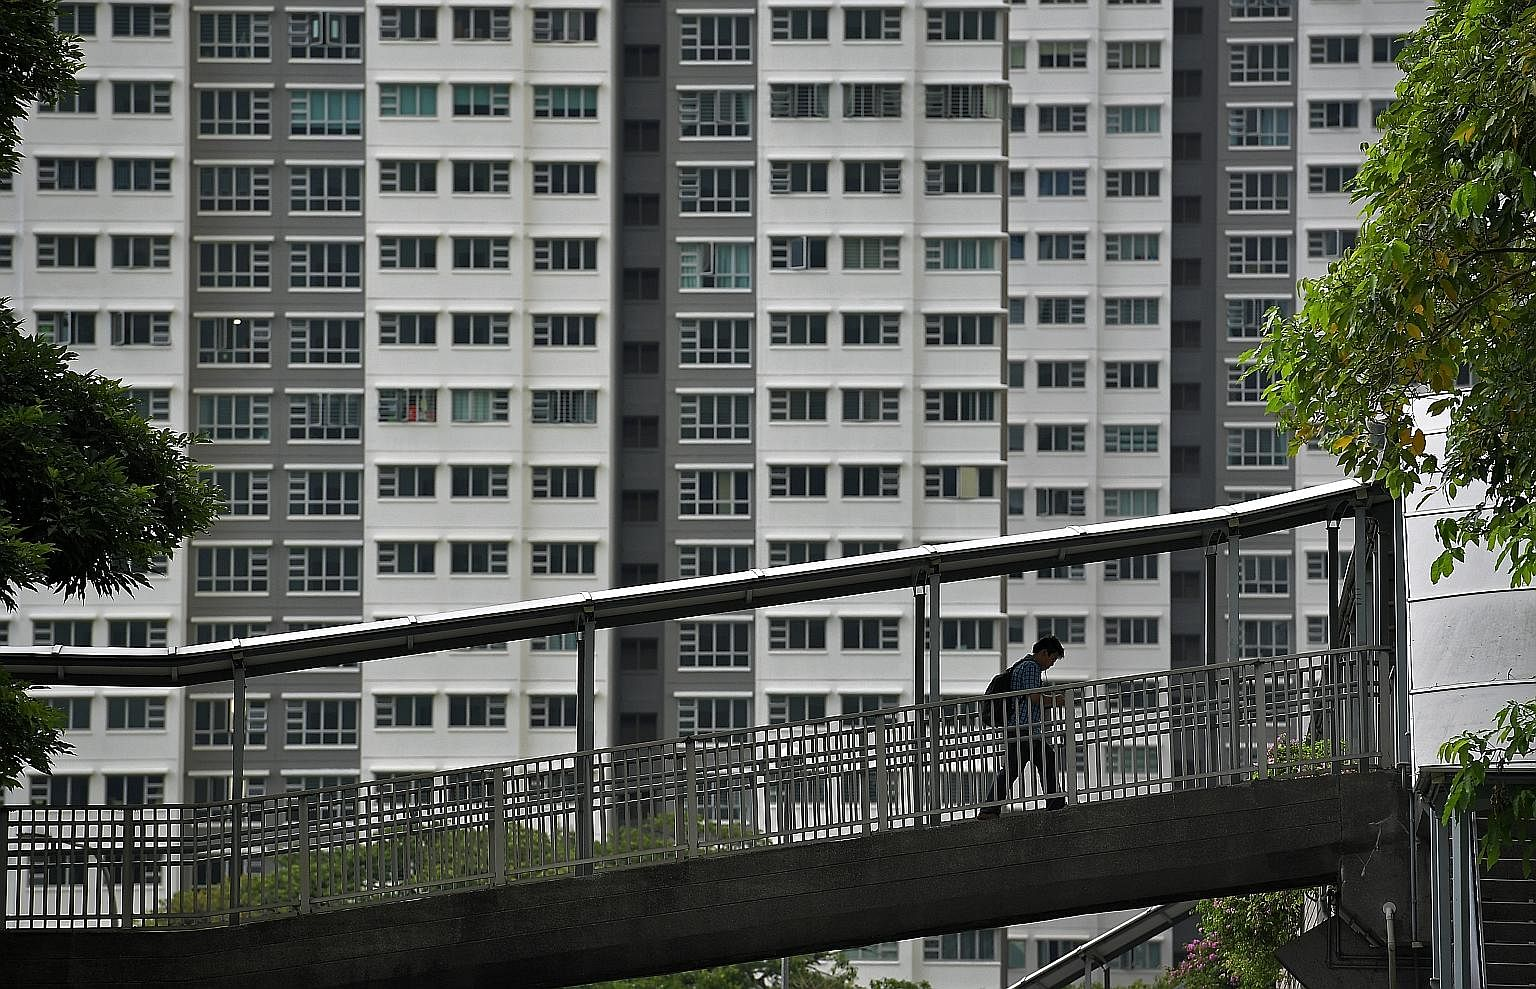 The average cost of constructing a pair of ramps is about $1.8 million, said former transport minister Lui Tuck Yew in Parliament in 2014. So far, 23 bridges have been fitted with lifts, and works on another 24 bridges are to be finished by the end o